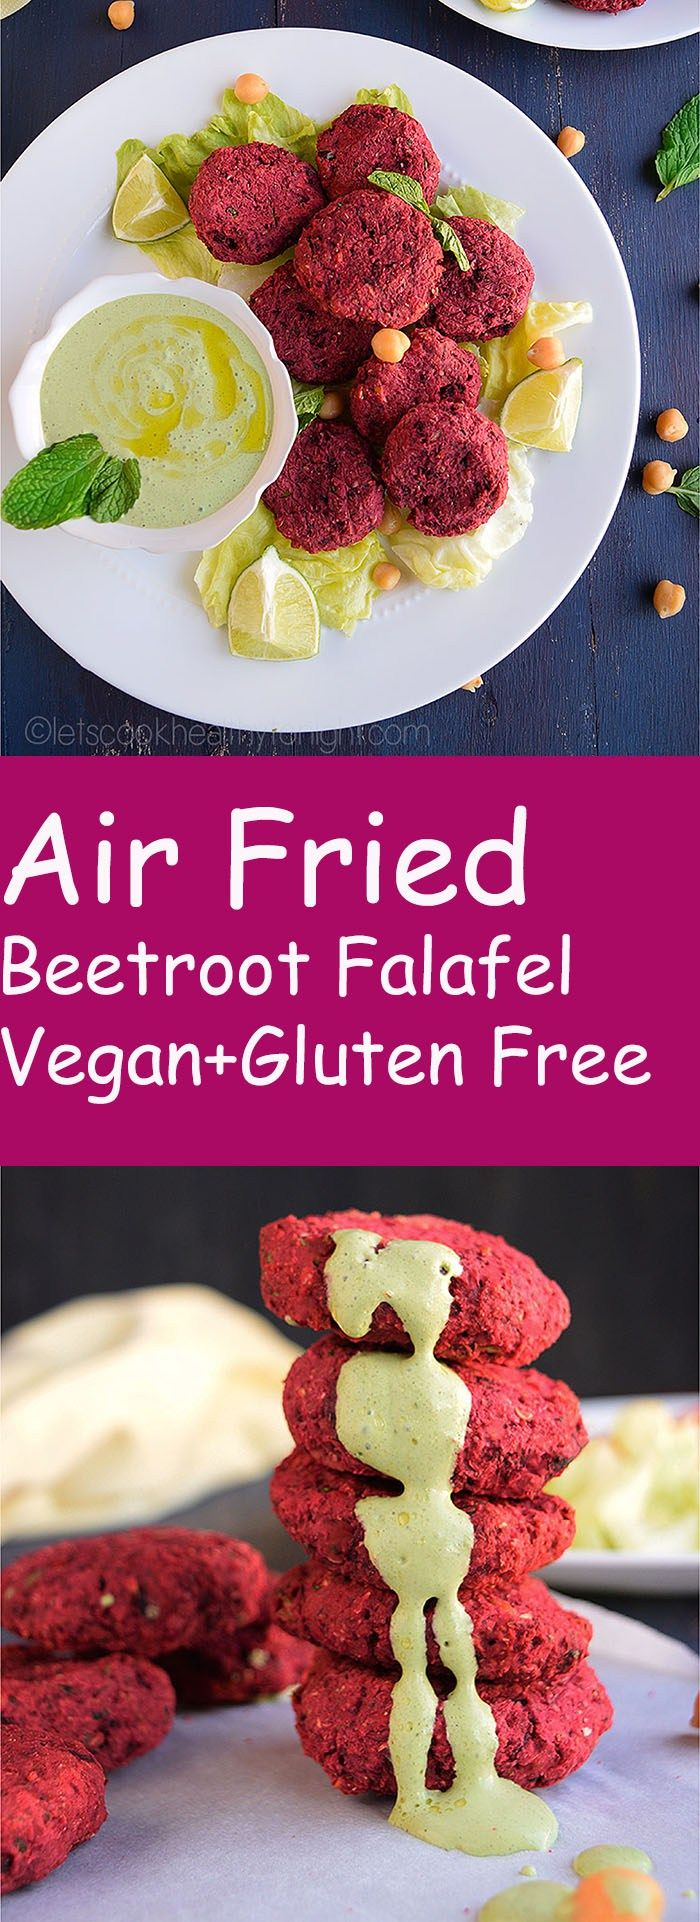 Air Fried Beet Root Falafel